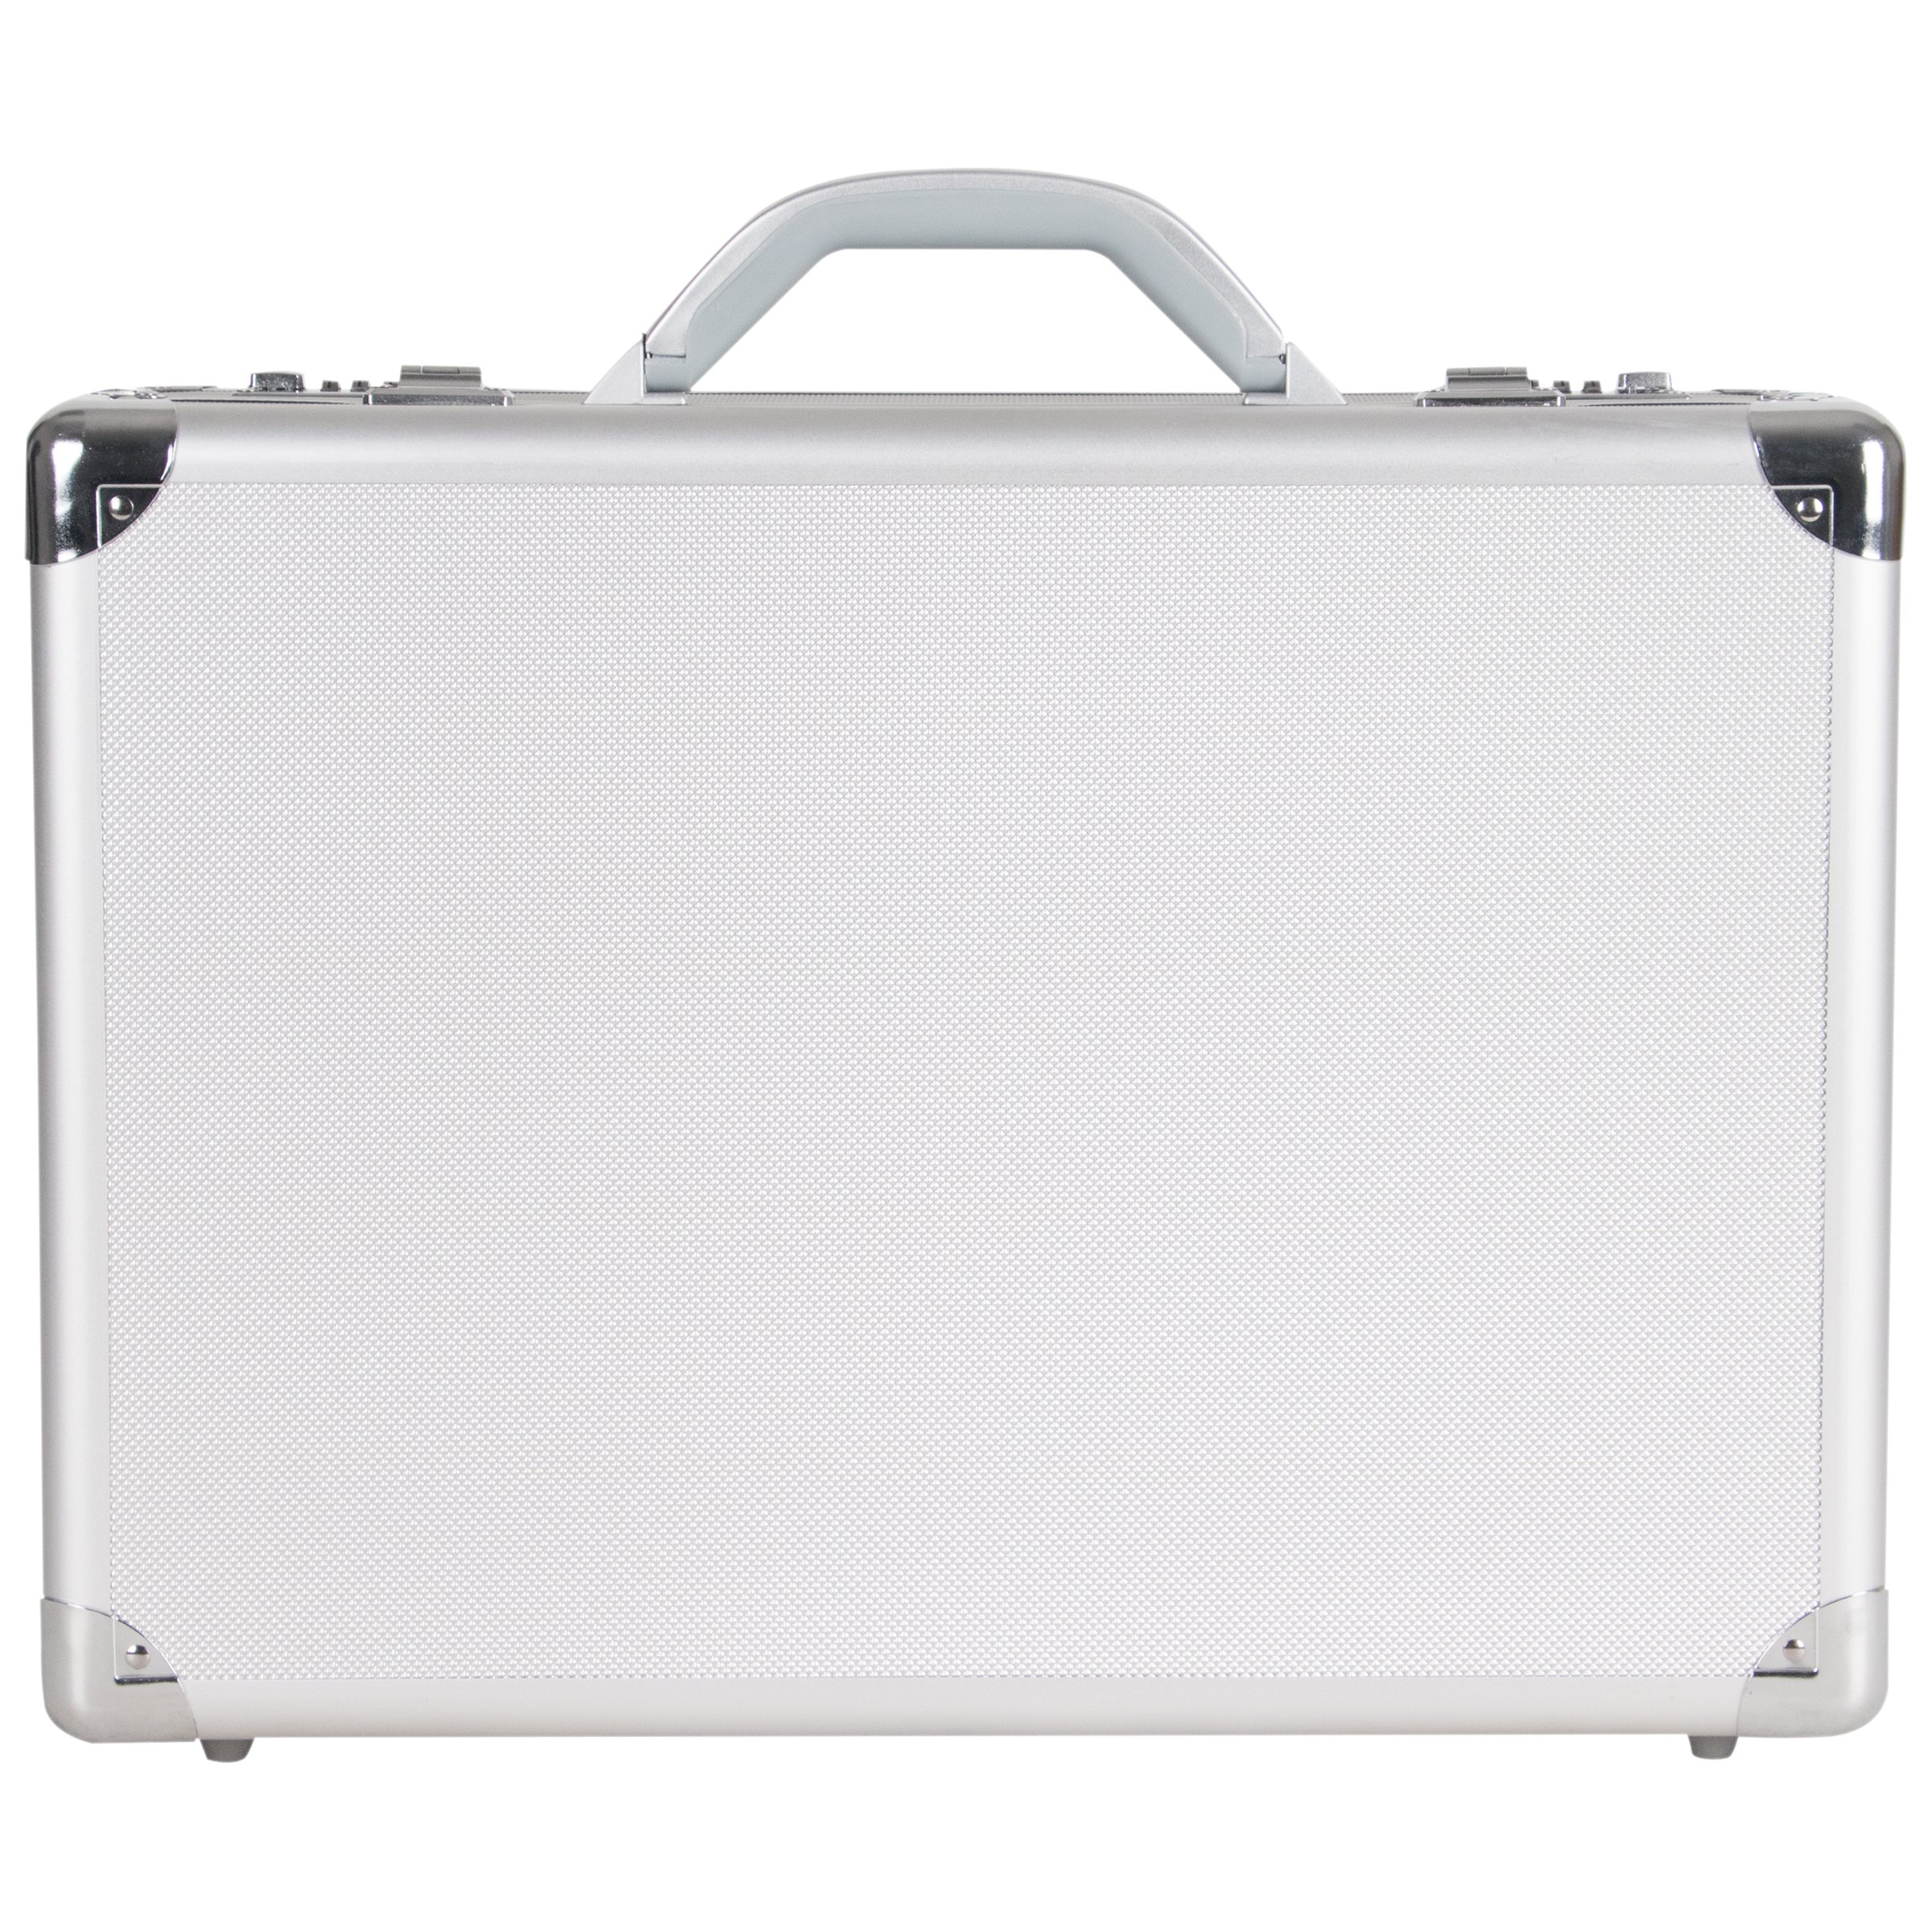 Heritage Travelware Aluminum 17'' Attaché with Combination Lock Laptop Briefcase, Silver, One Size